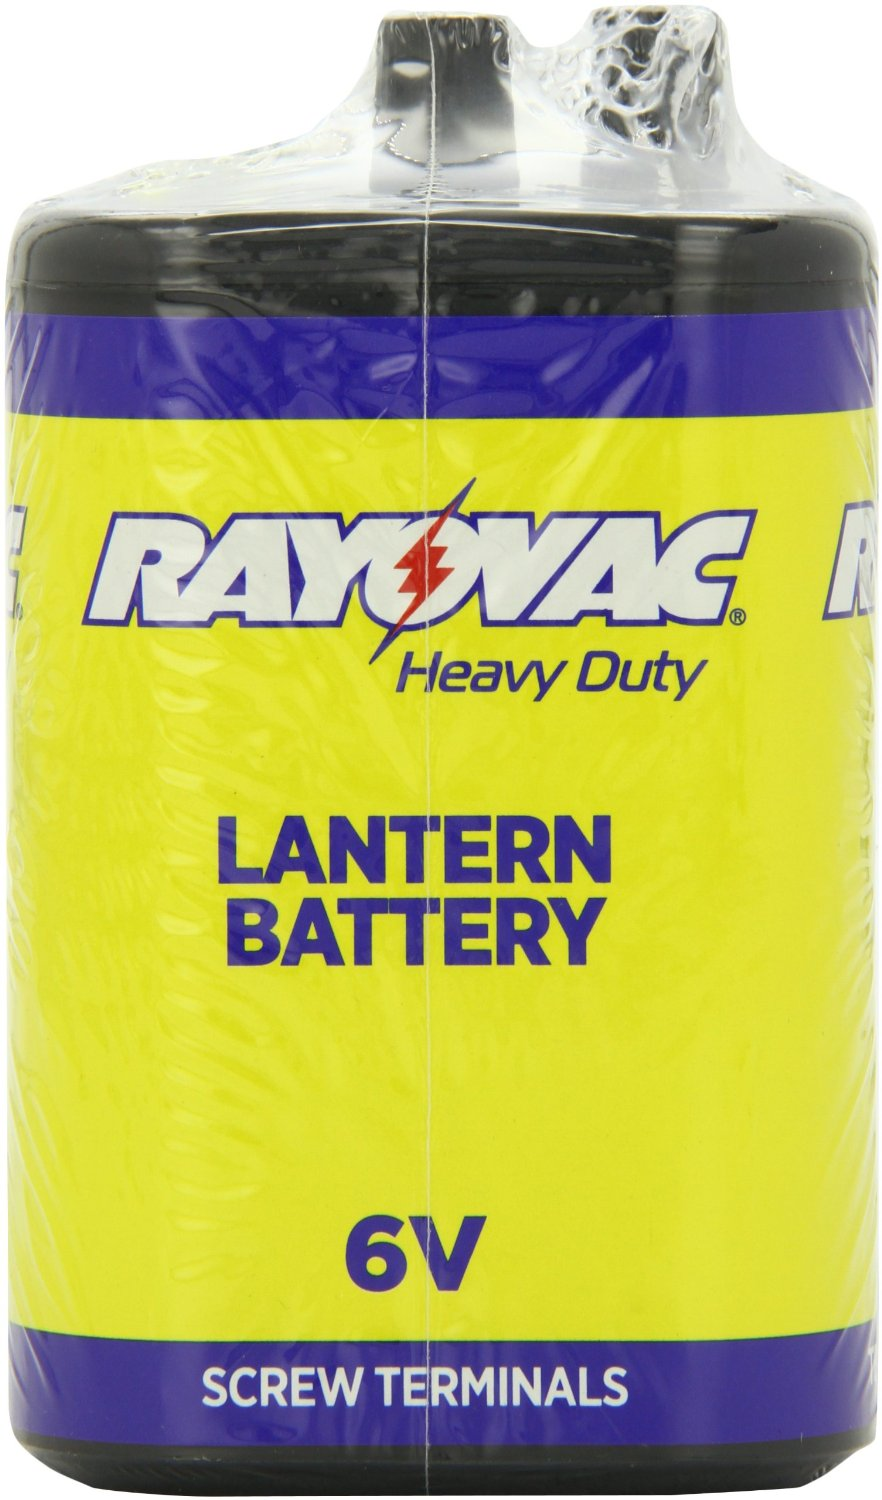 Rayovac 945R4 9700mAh 6V Zinc Chloride (ZnCl) Heavy-Duty Lantern Battery with Screw Terminals - Shrink Pack